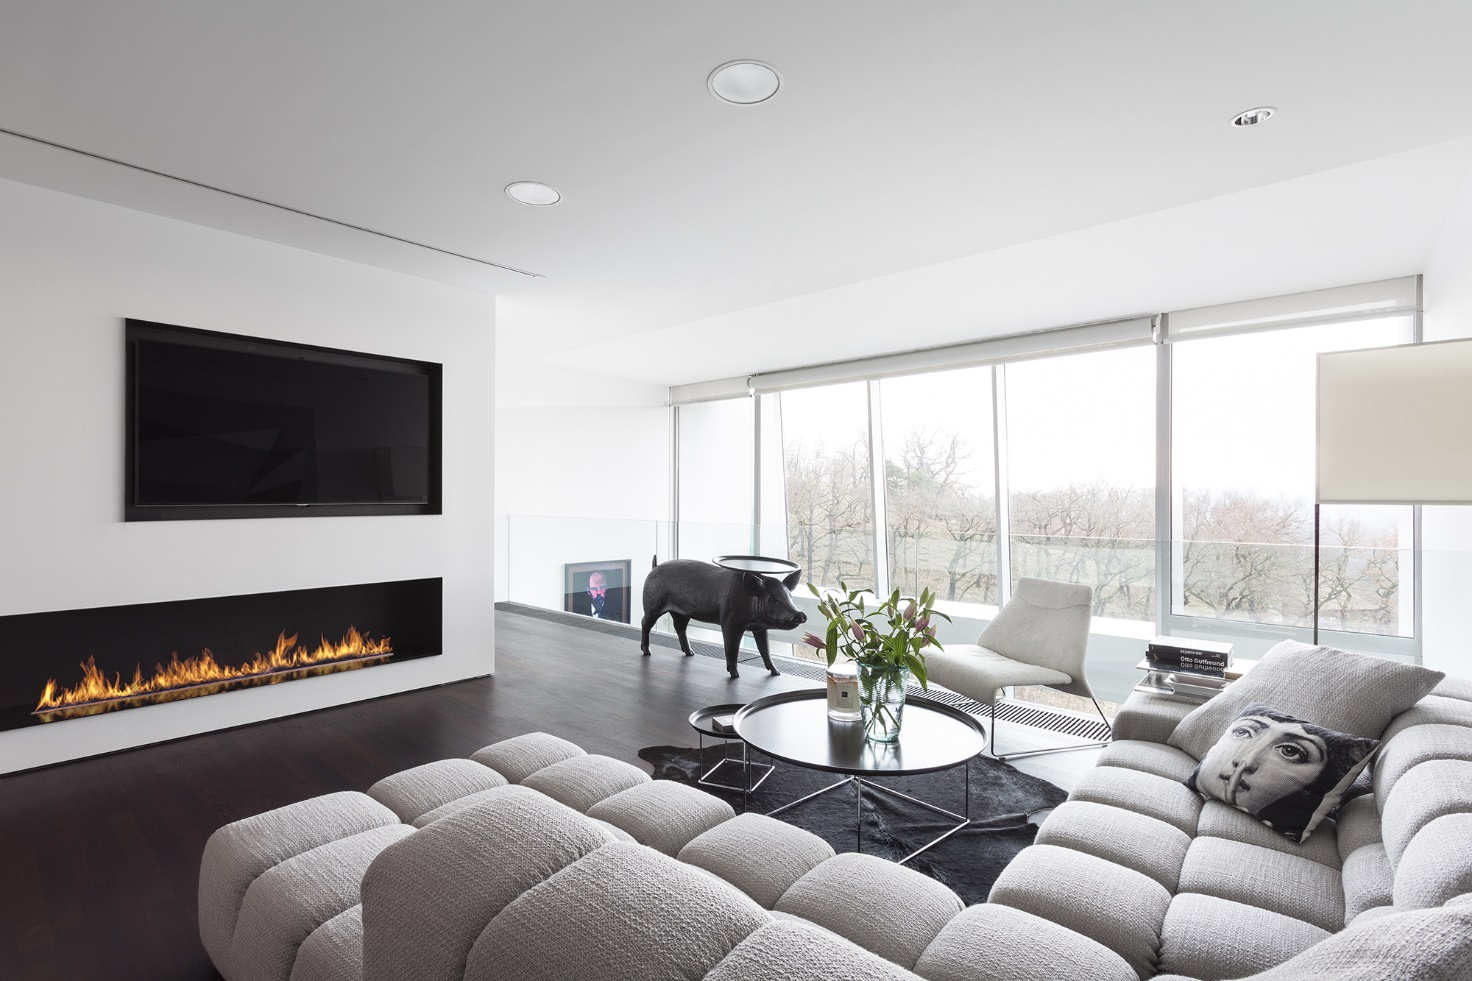 How to decorate living room with a fireplace and a TV